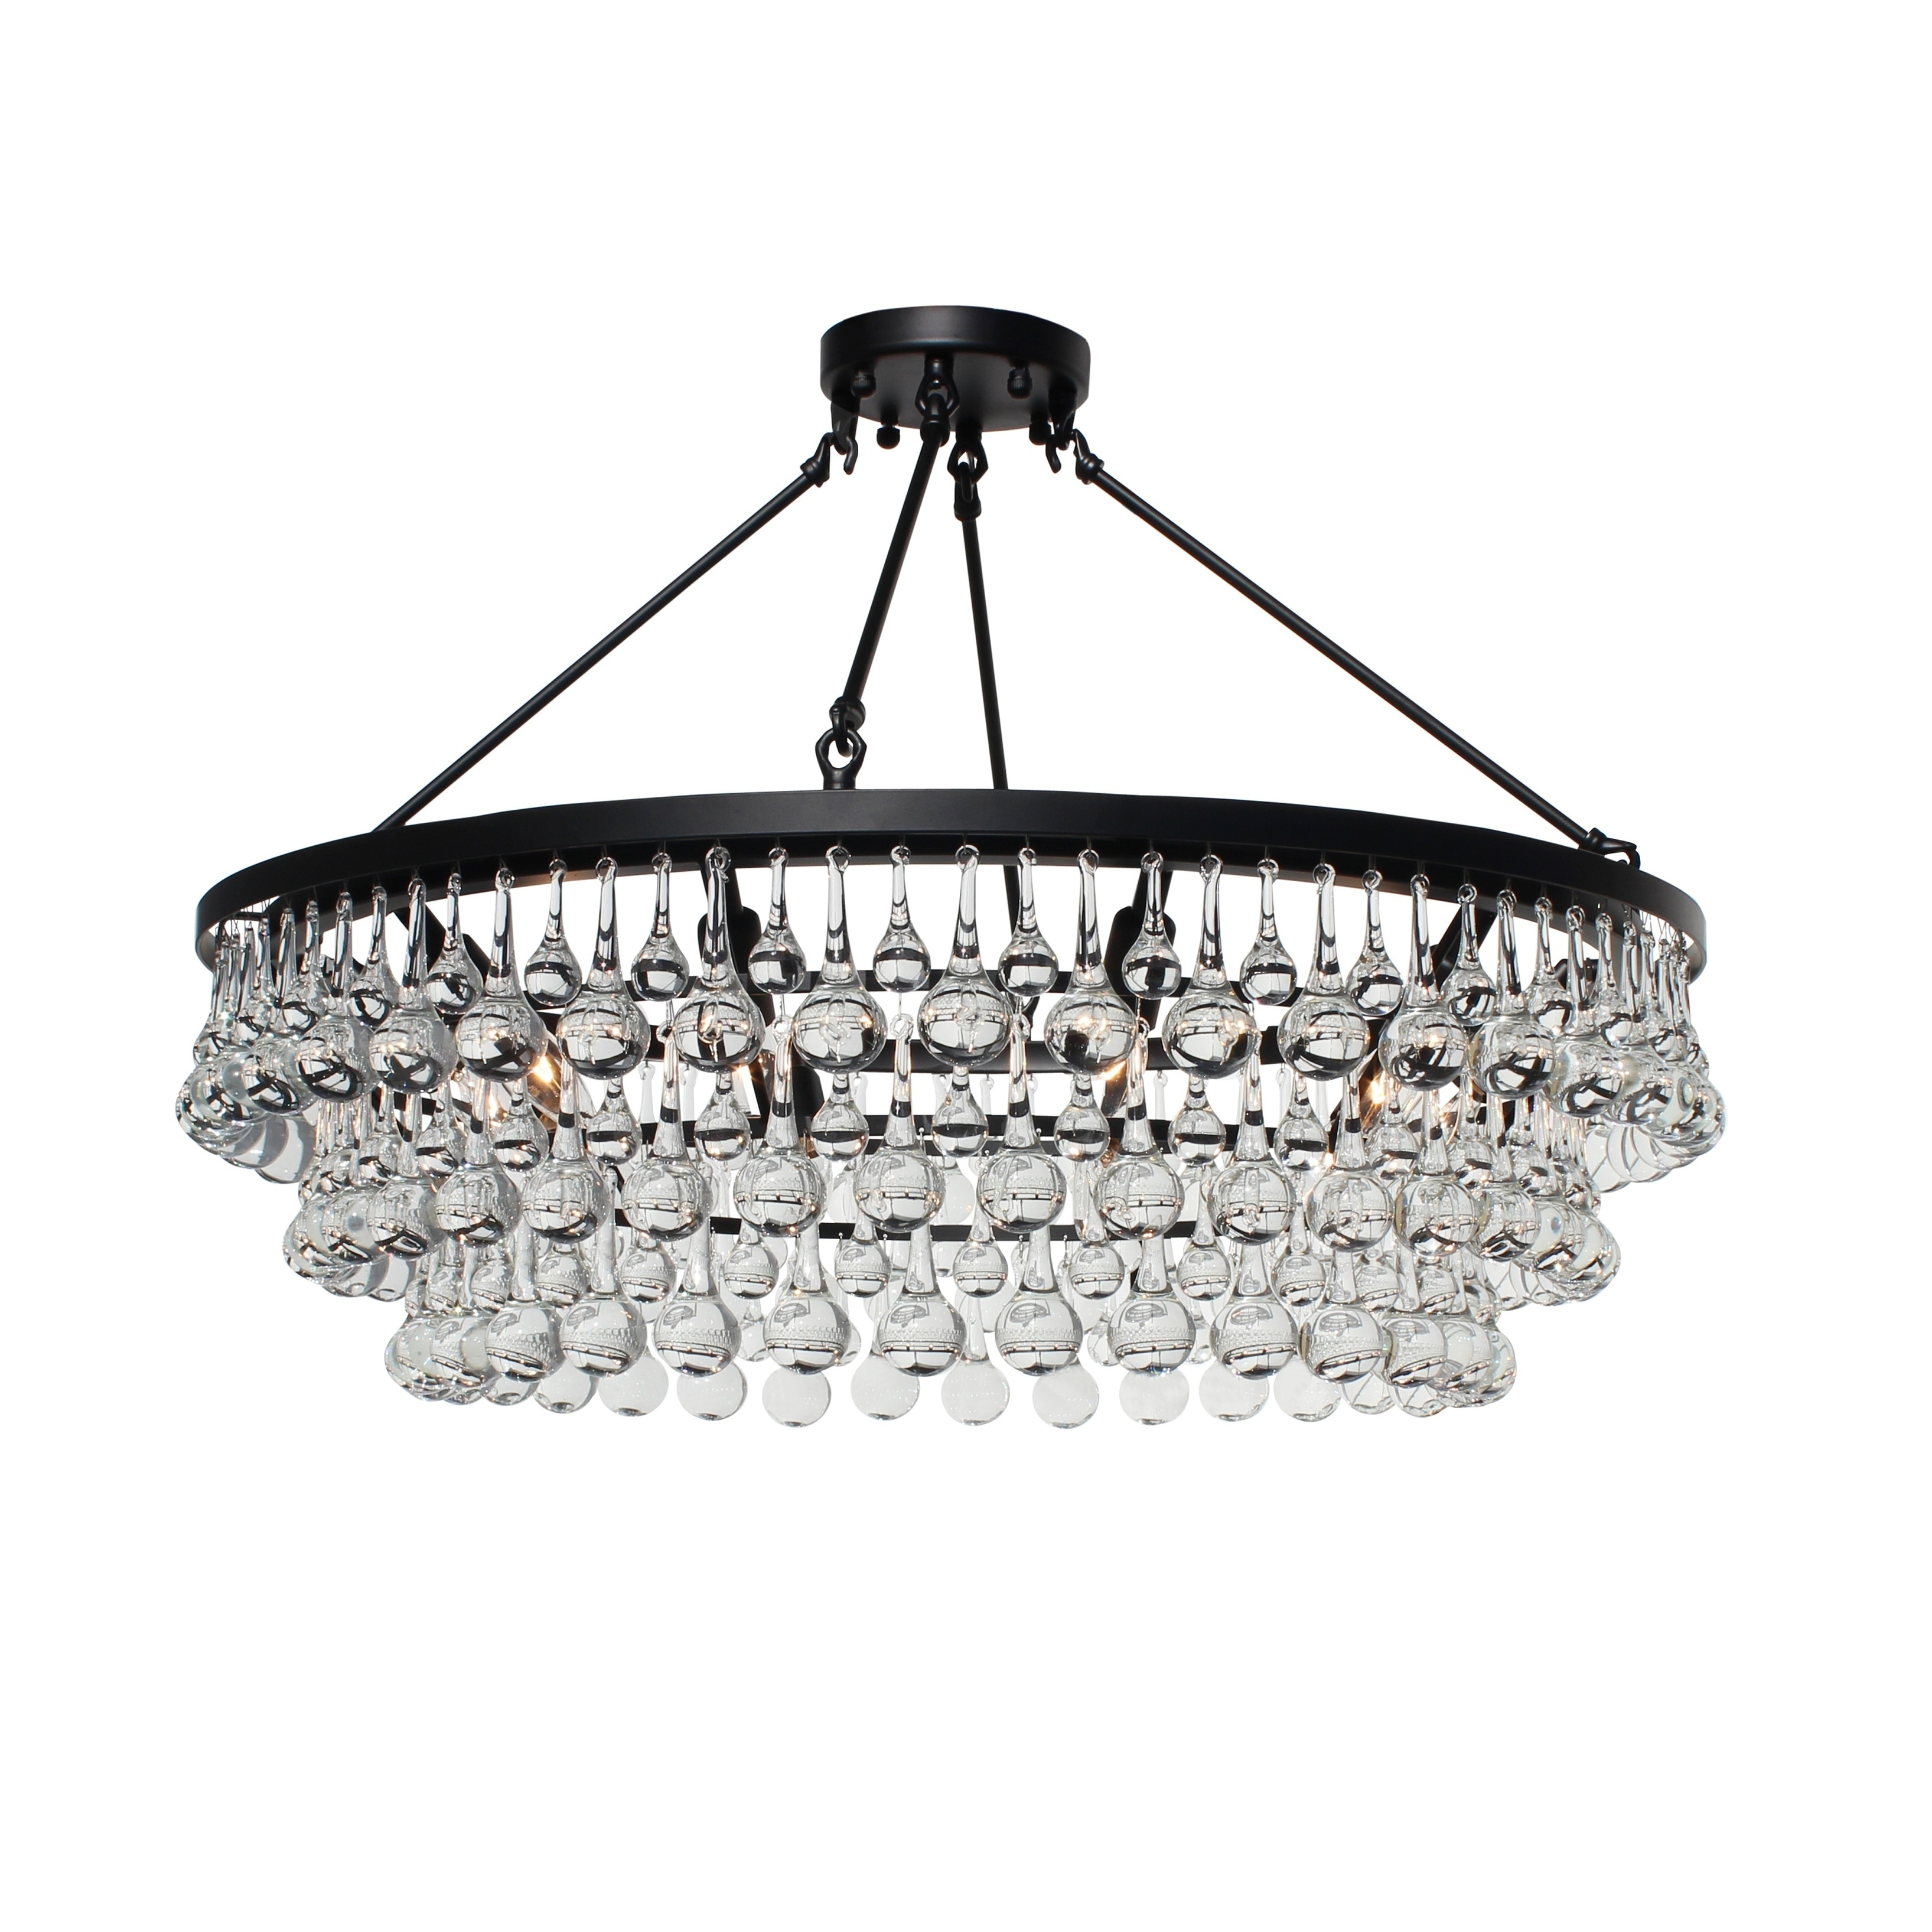 Celeste Glass Flush Mount Crystal Chandelier, Black – N/a In Mcknight 9 Light Chandeliers (View 11 of 30)